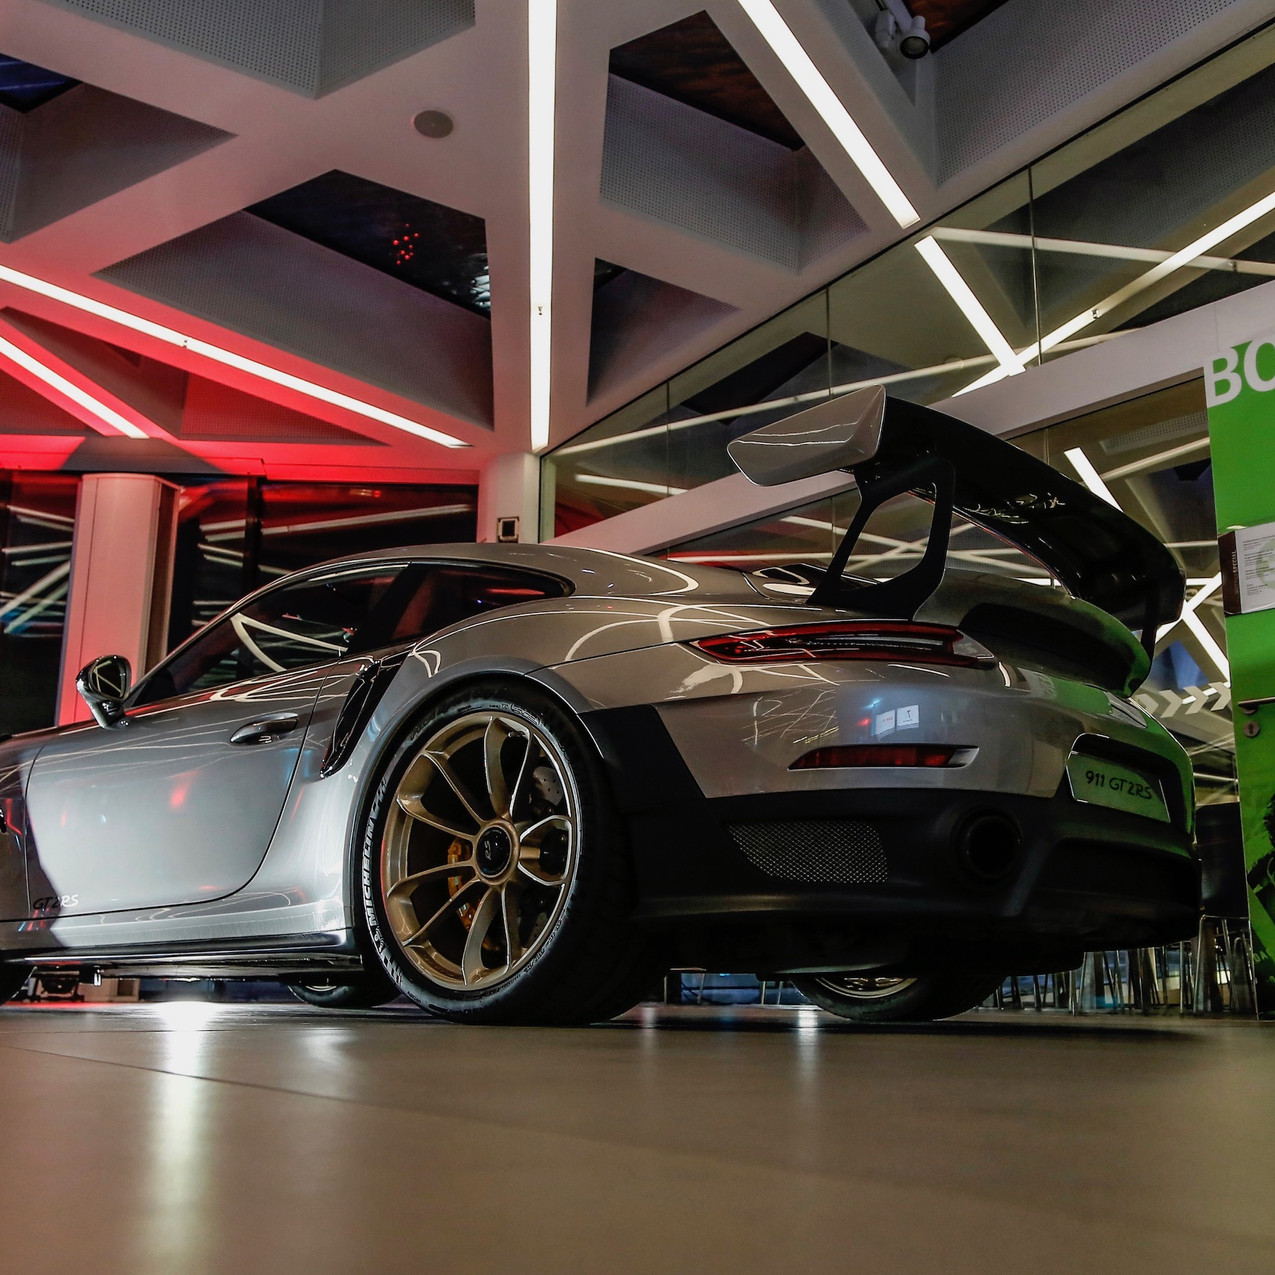 high_911_gt2_rs_new_year_reception_porsche_museum_2018_porsche_ag (1)